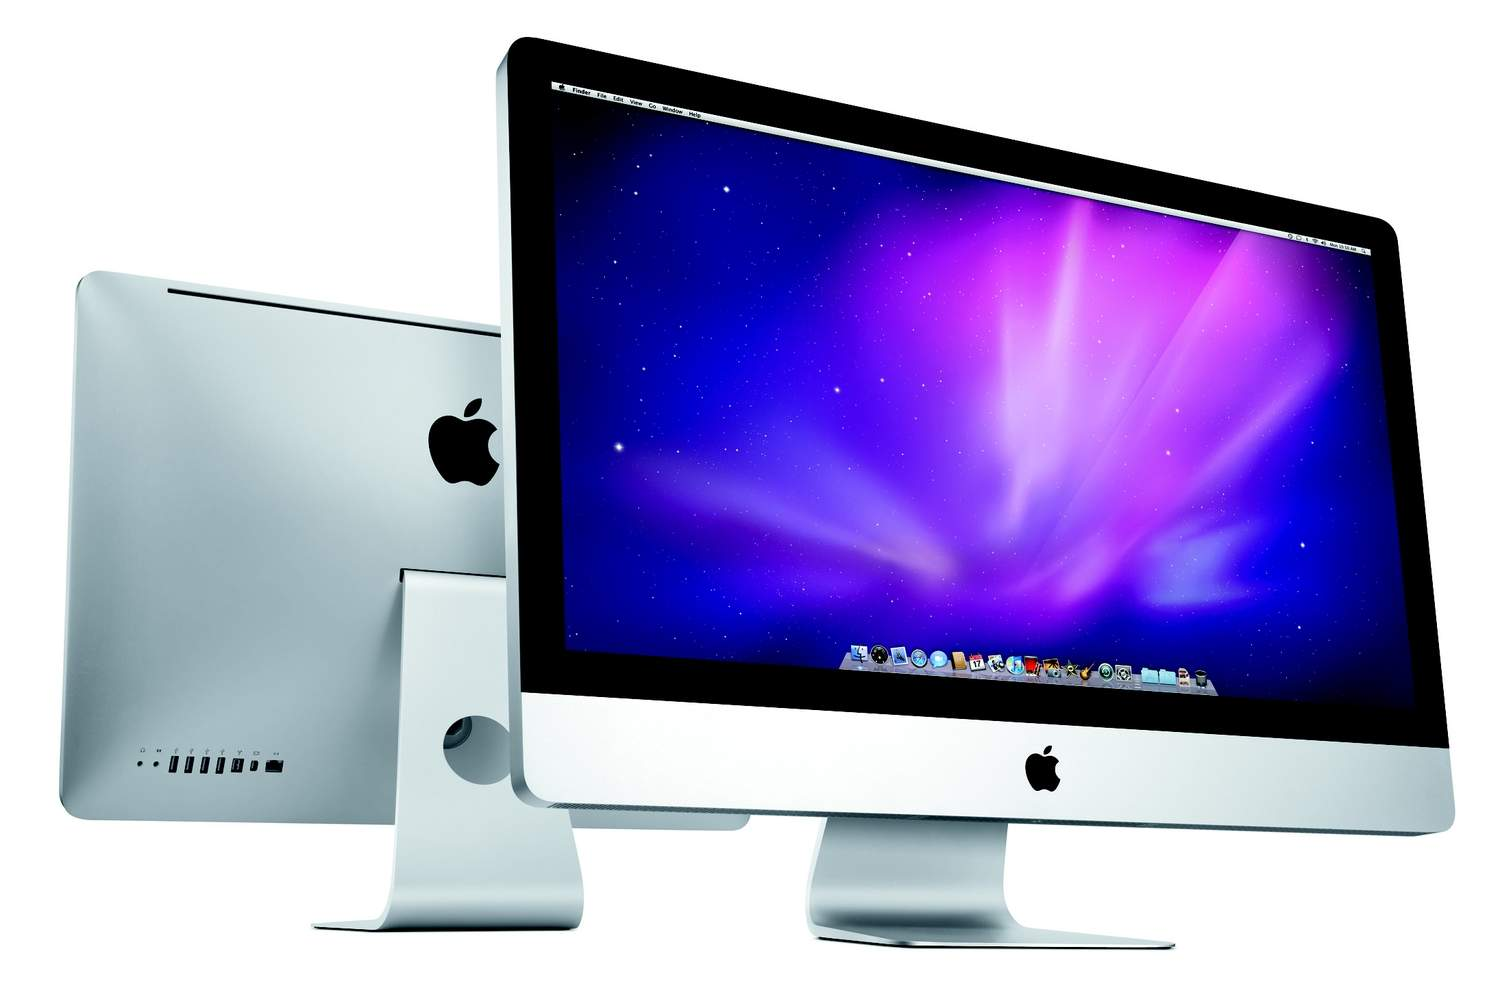 Apple Computers Today In Apple History: Imac Goes Big With 27-inch Display